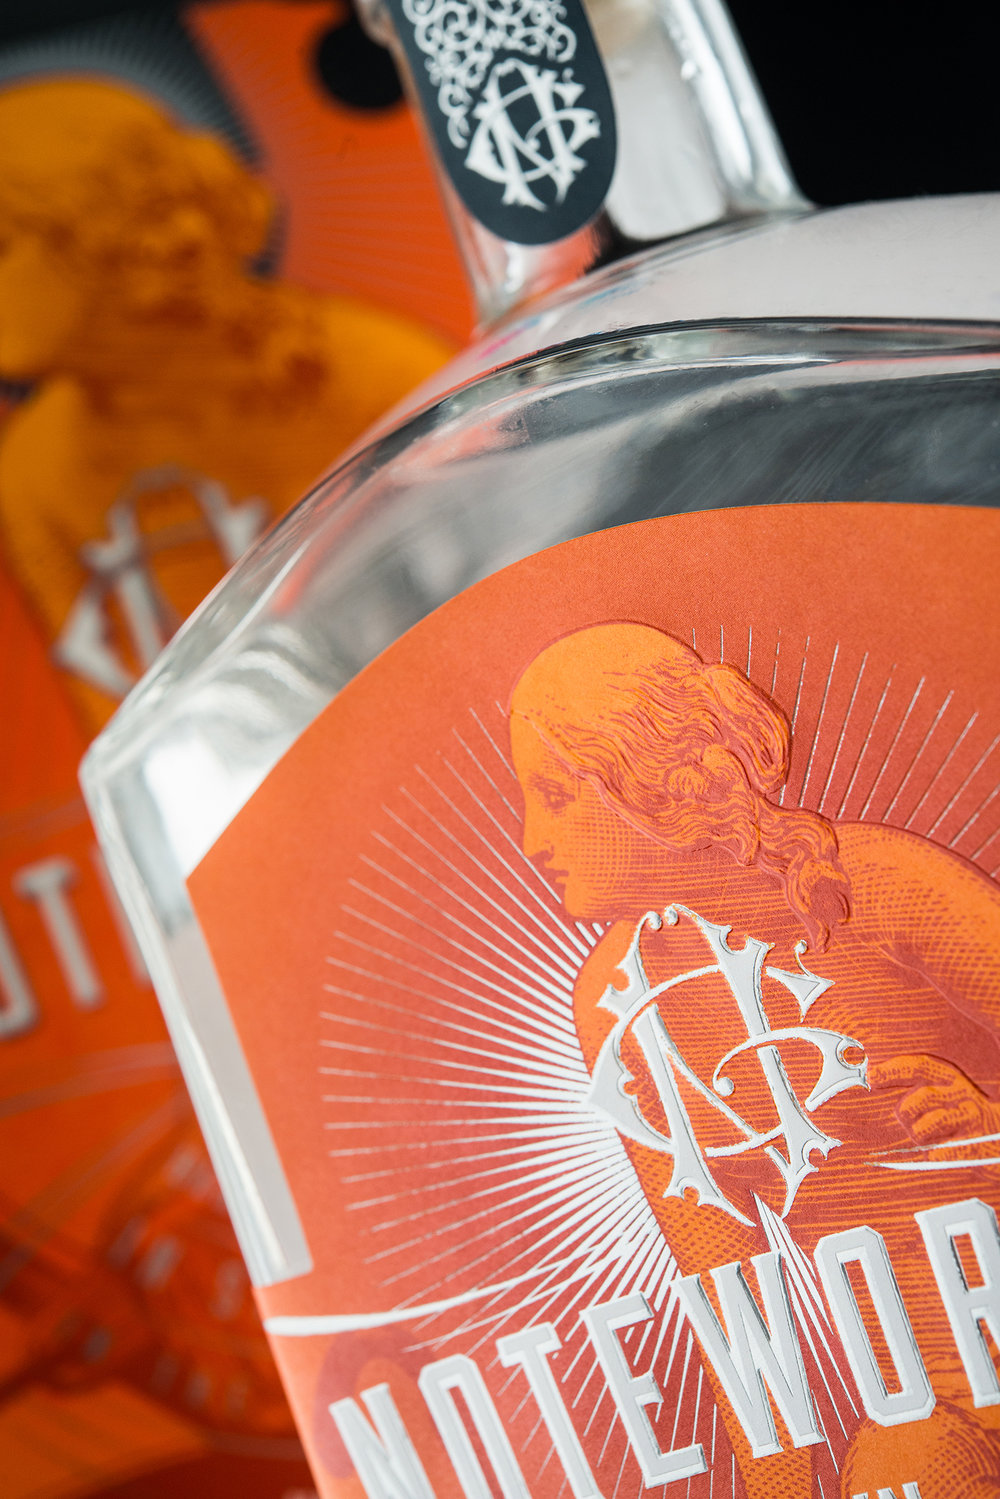 Branding and Packaging Design for Dubh Glas Distillery's Noteworthy Gin